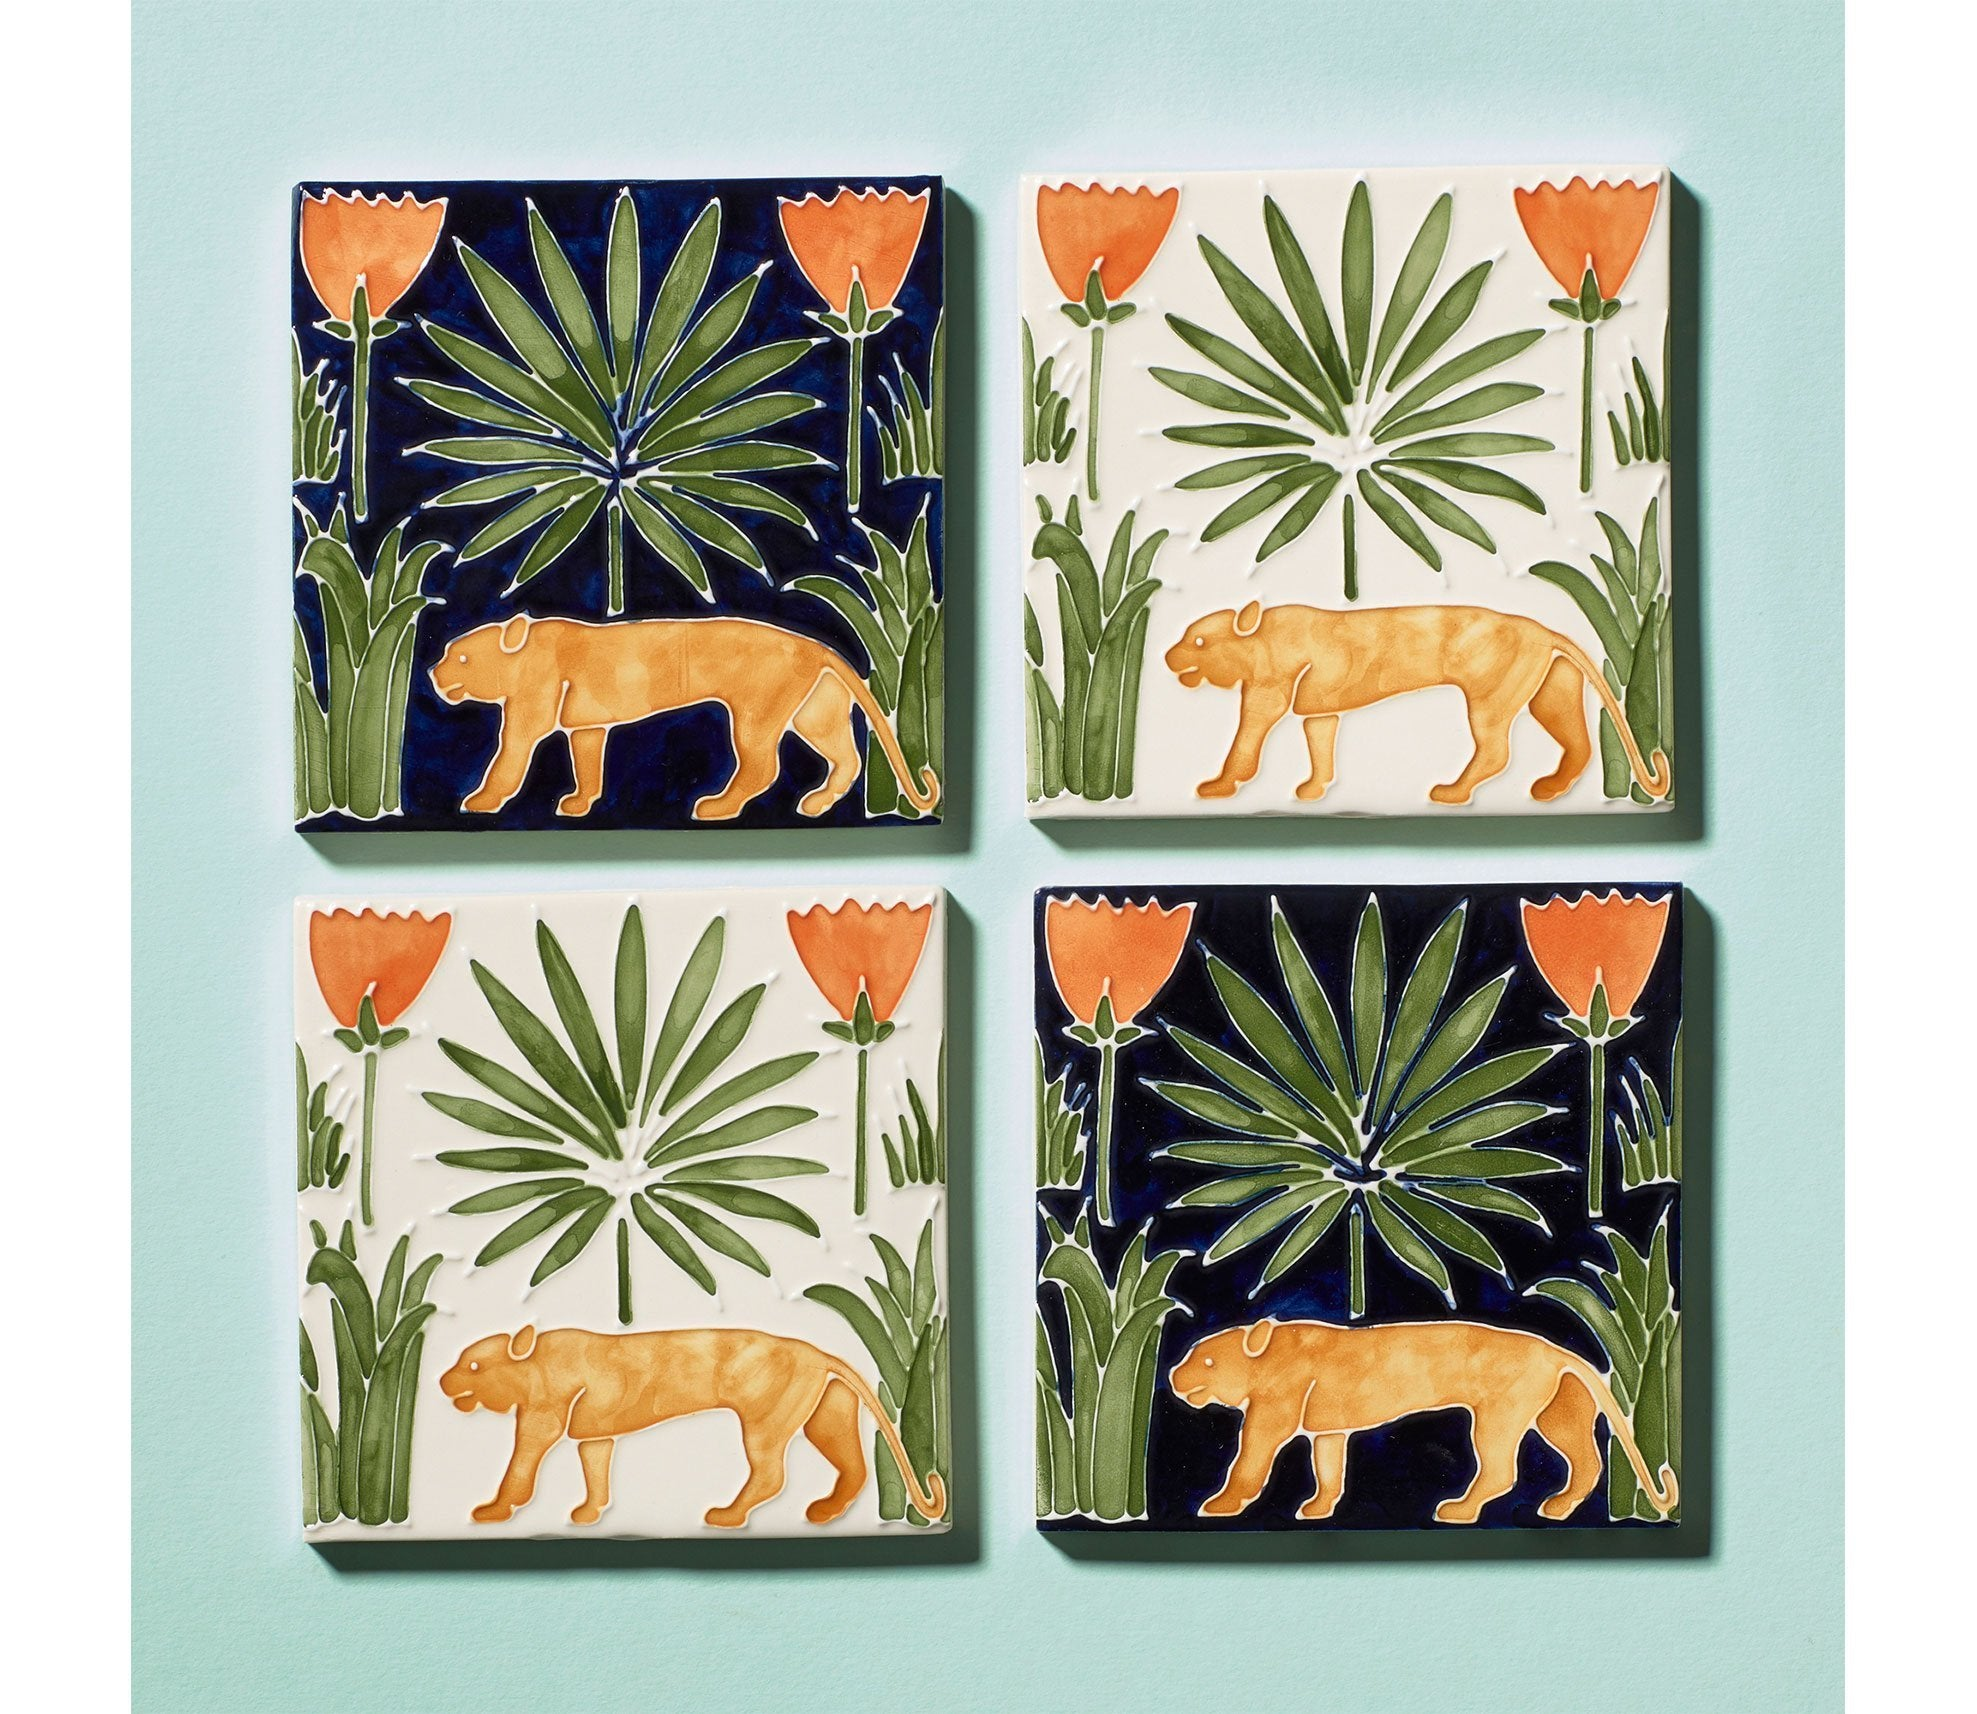 Lioness & Palms Tiles Product Image 1